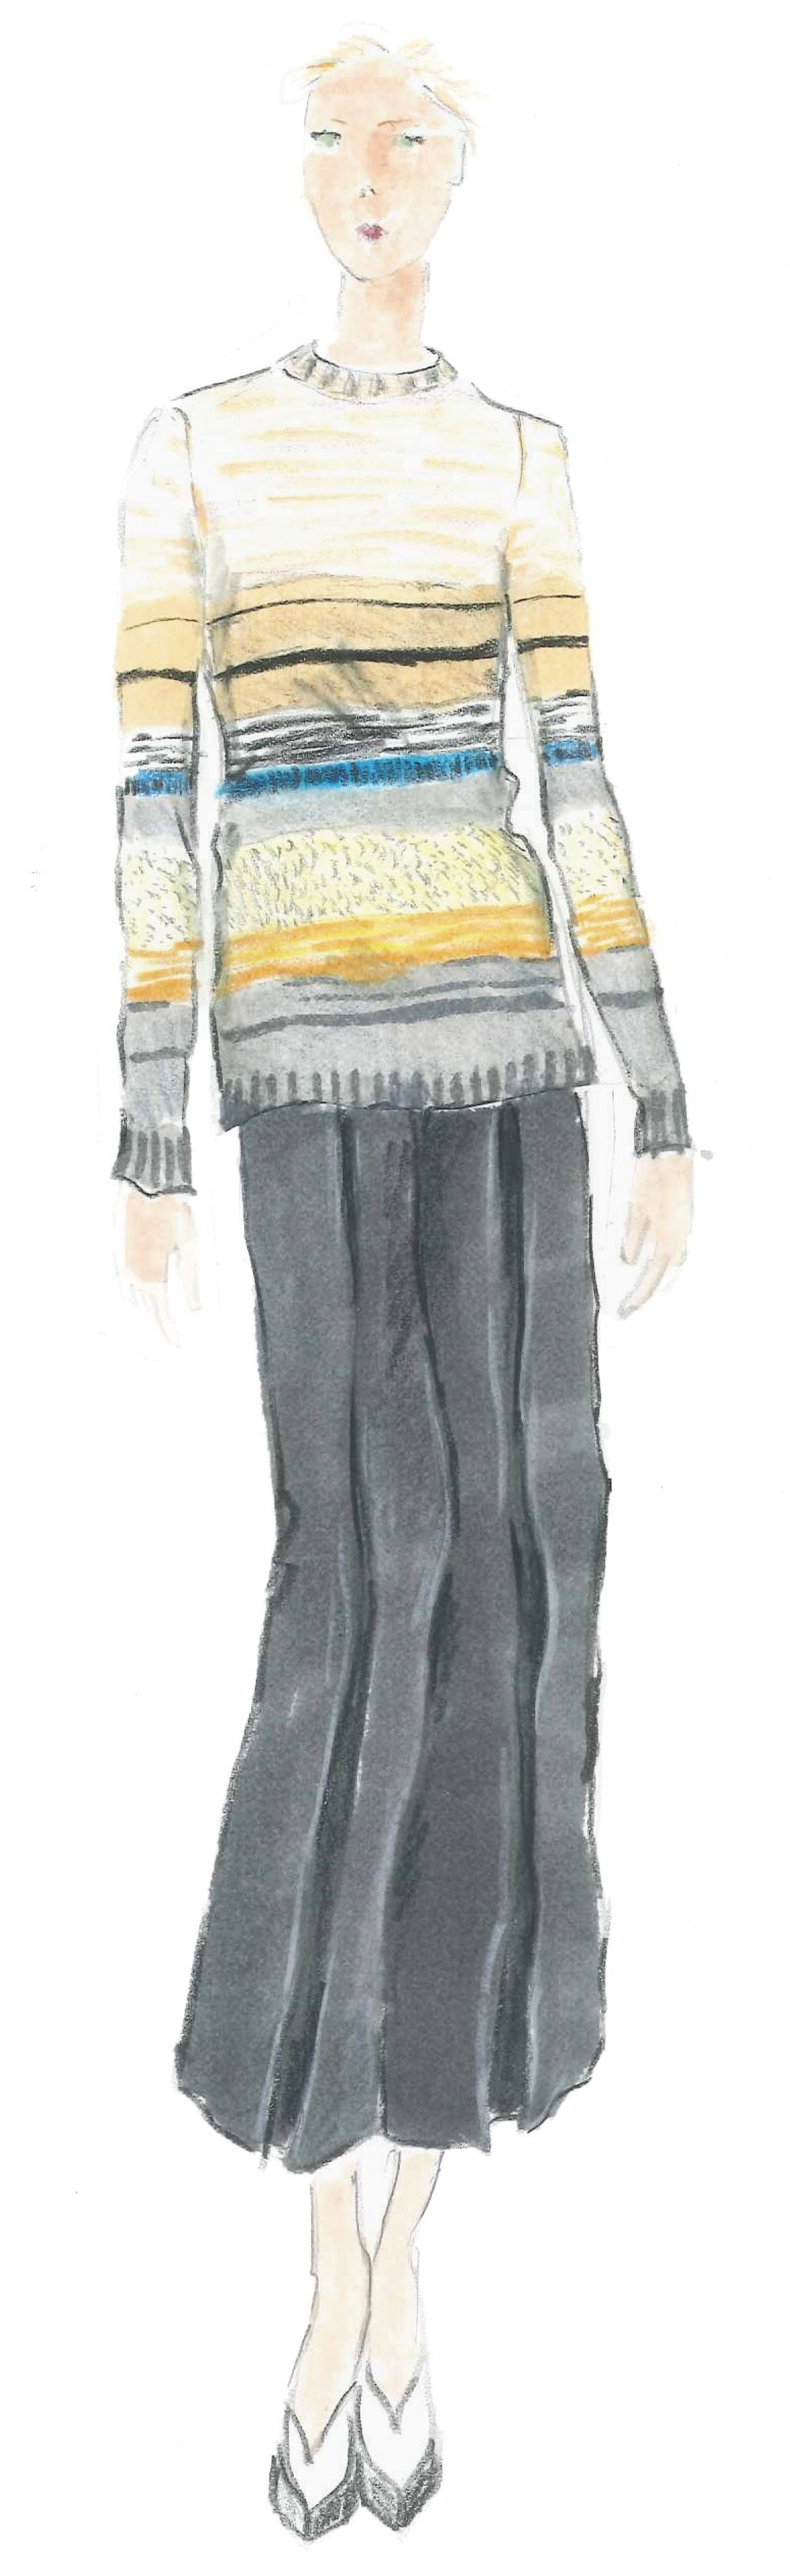 Landscape_stripe_sweater_sketch2.jpg